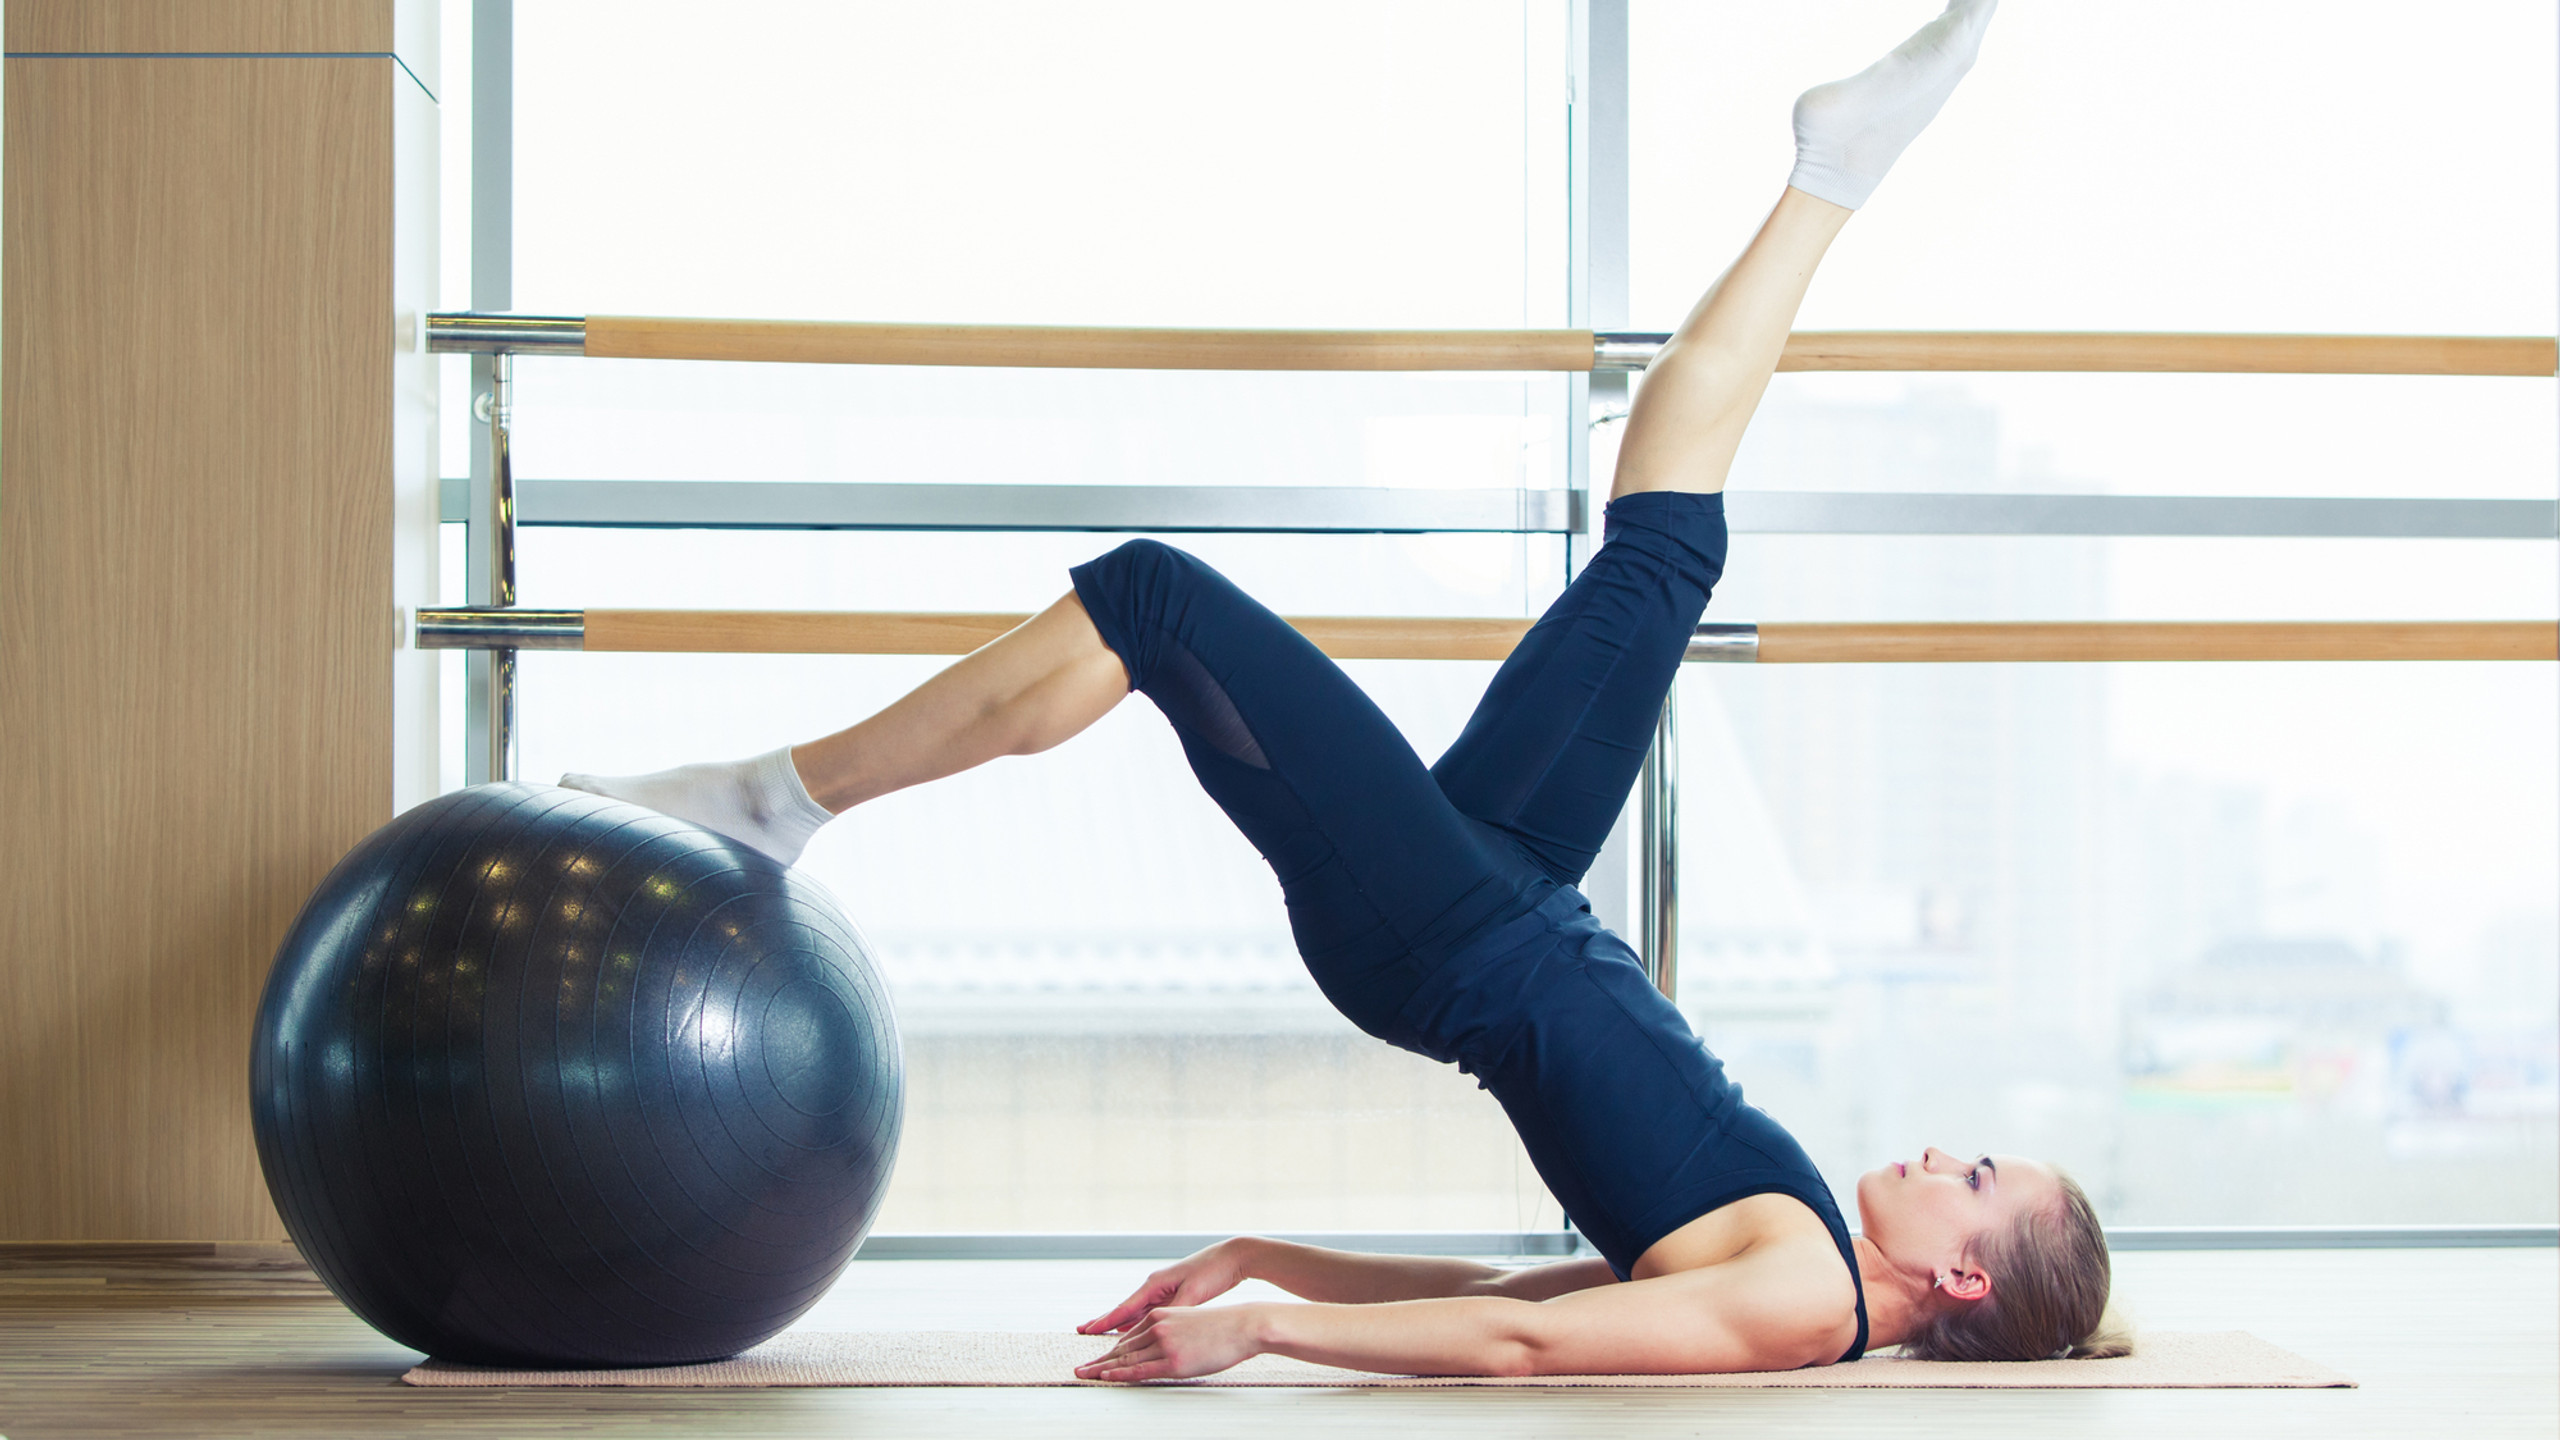 Pilates. One word with so much strength.  This form of exercise is best known for strengthening your core.  An exercise focused around control, the rewards more than outweigh the grunts experienced during the session.